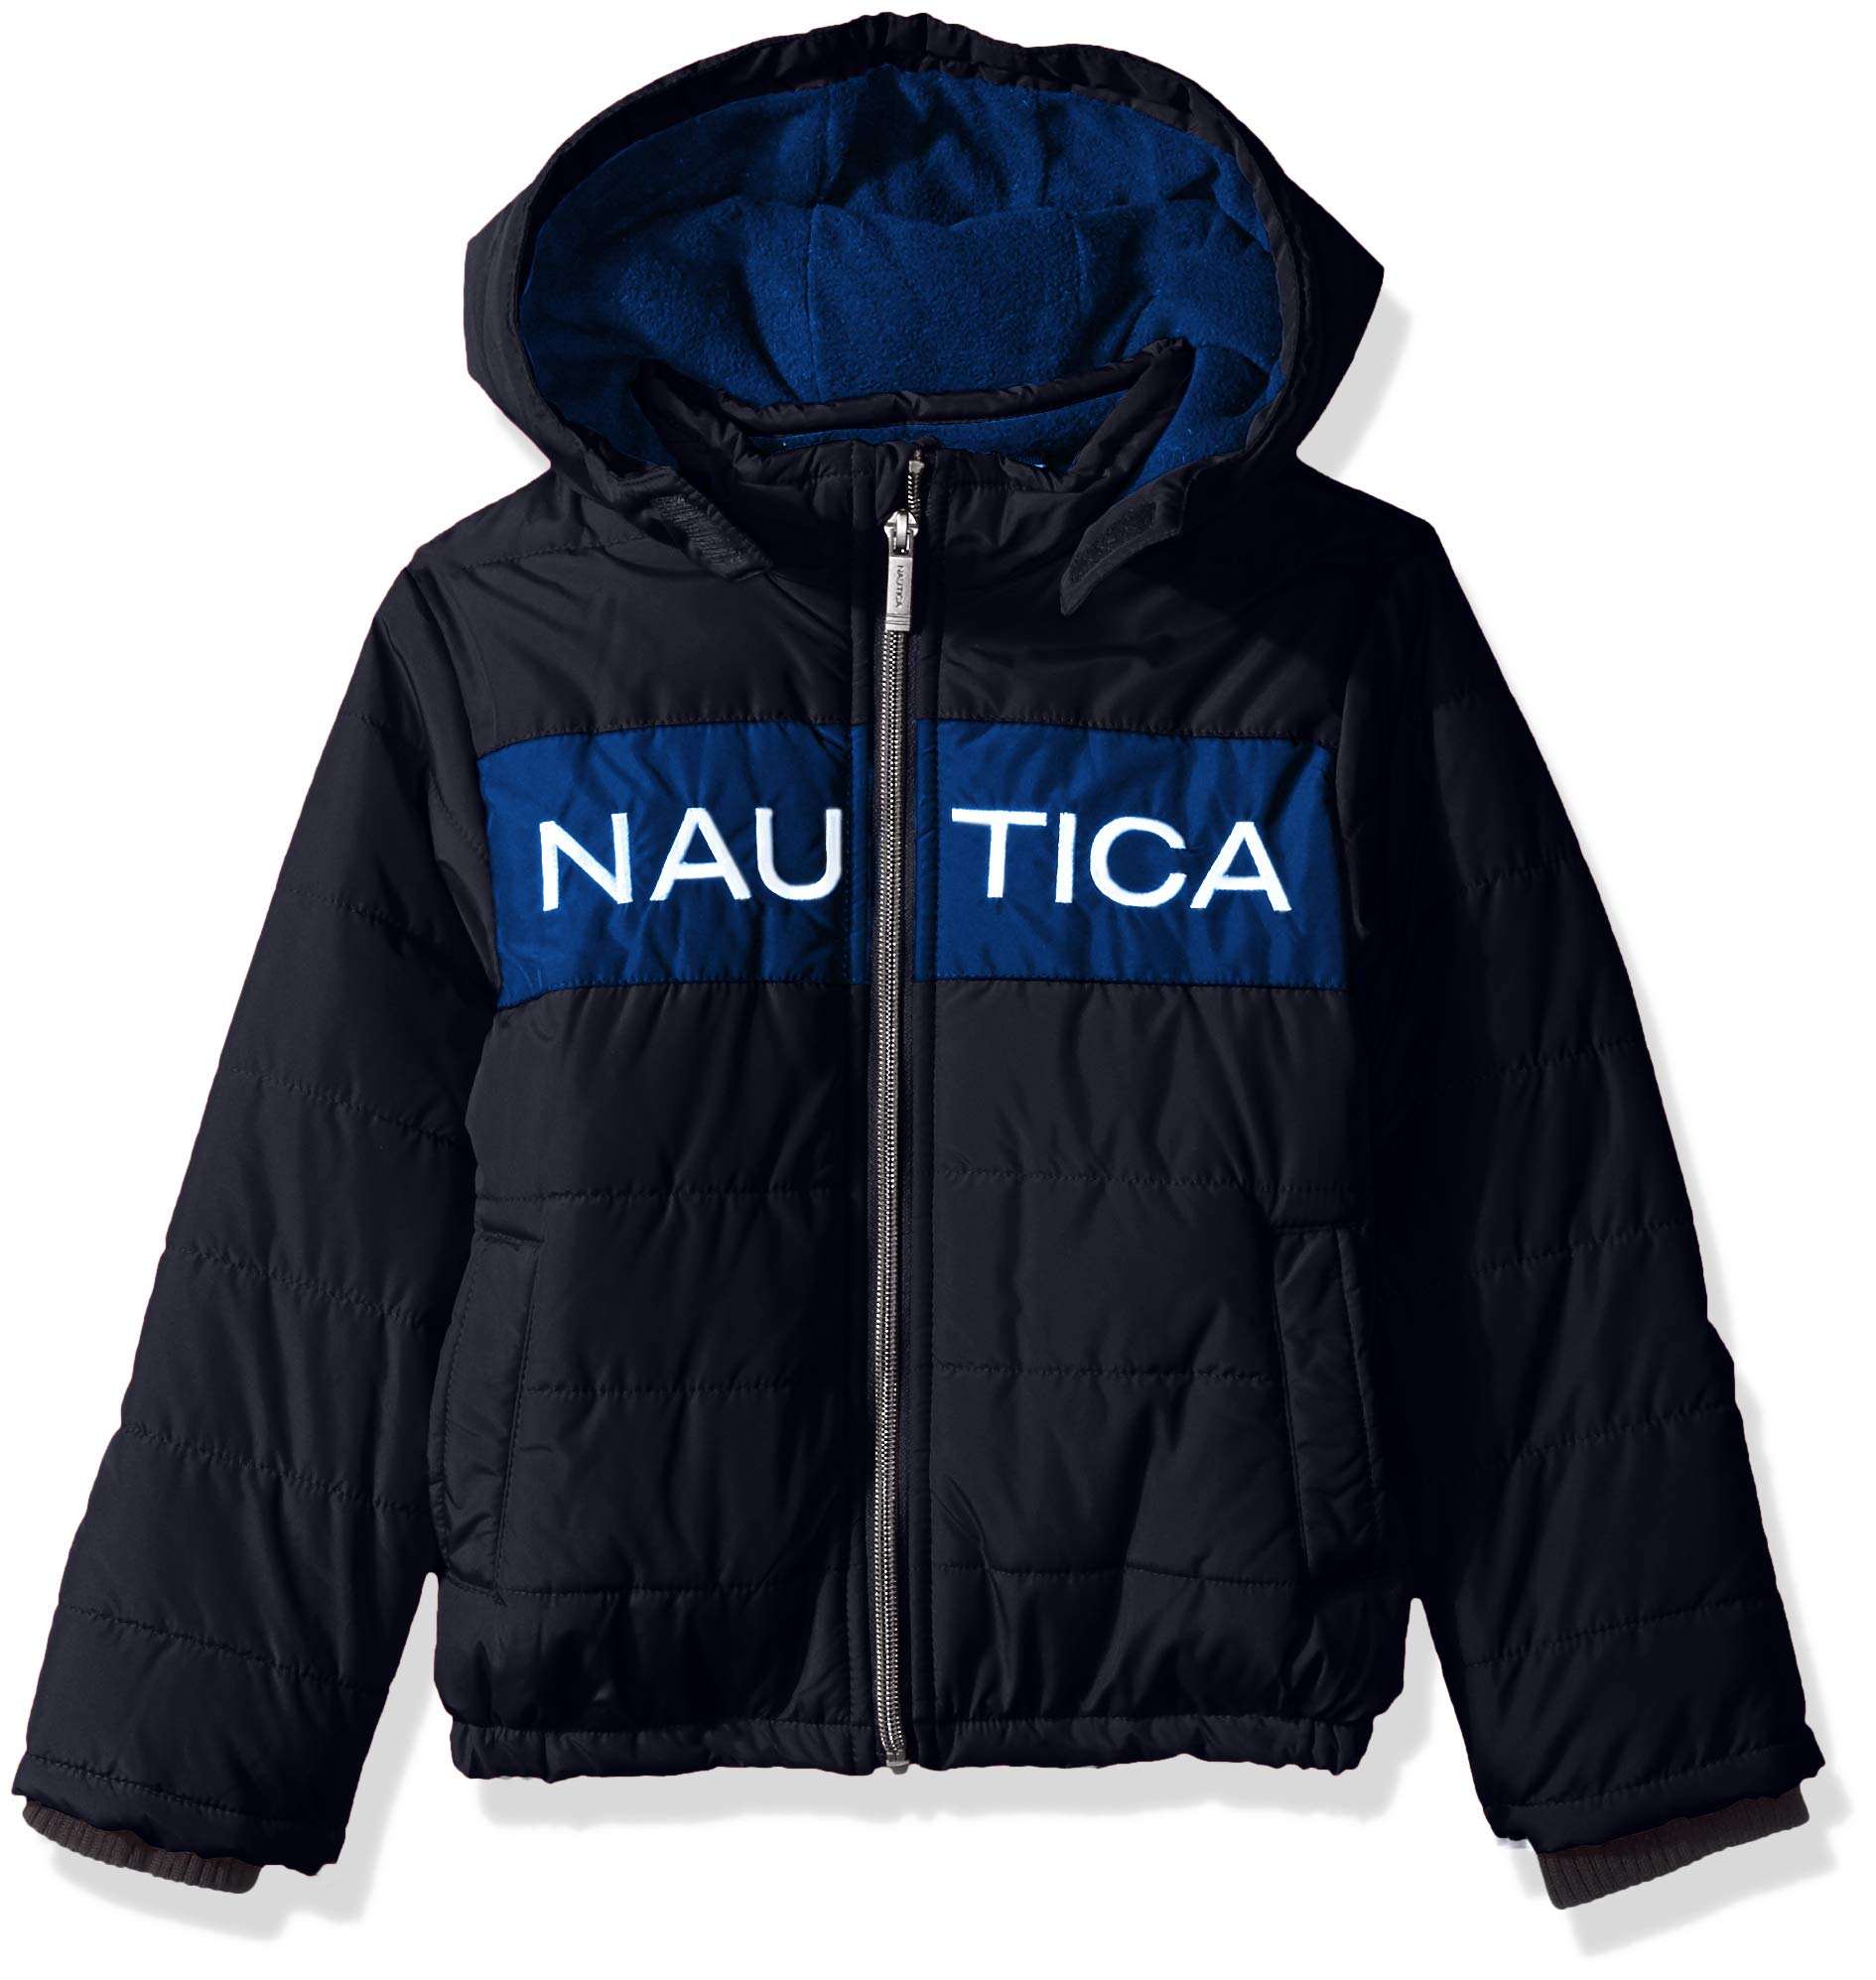 Nautica Boys' Little Water Resistant Signature Bubble Jacket with Storm Cuffs, Arthur Navy, Small (4)